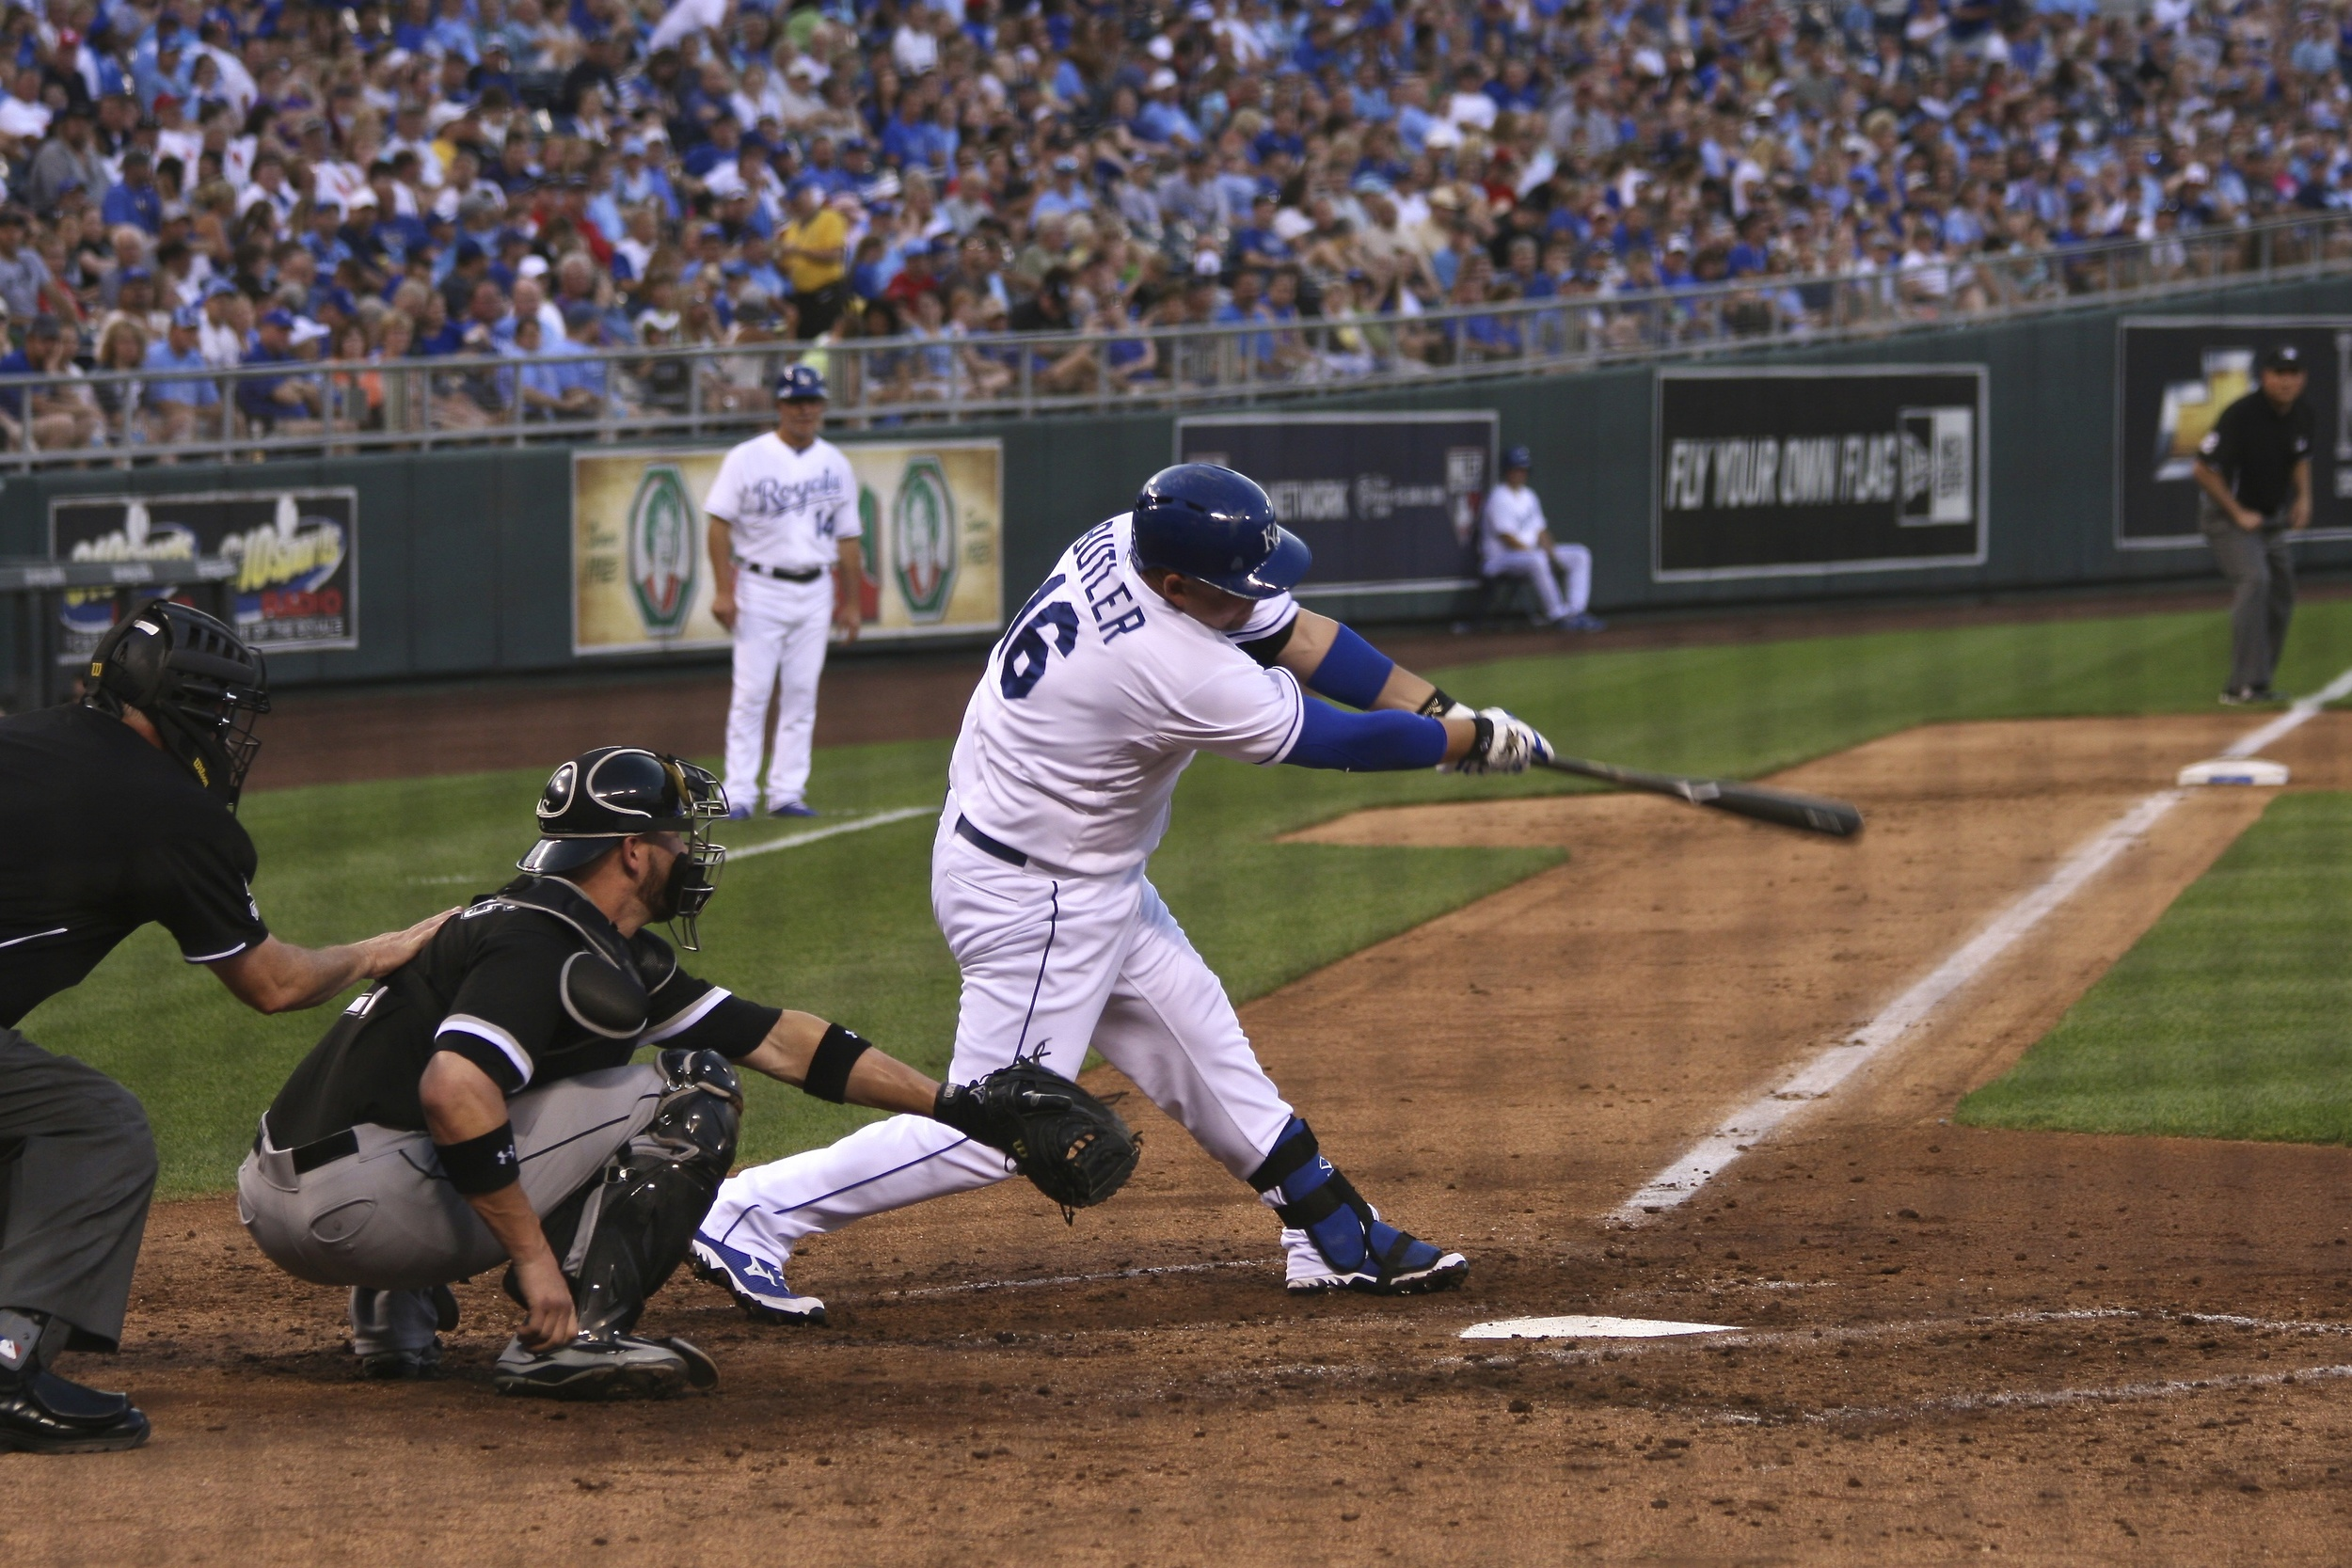 Billy Butler connects